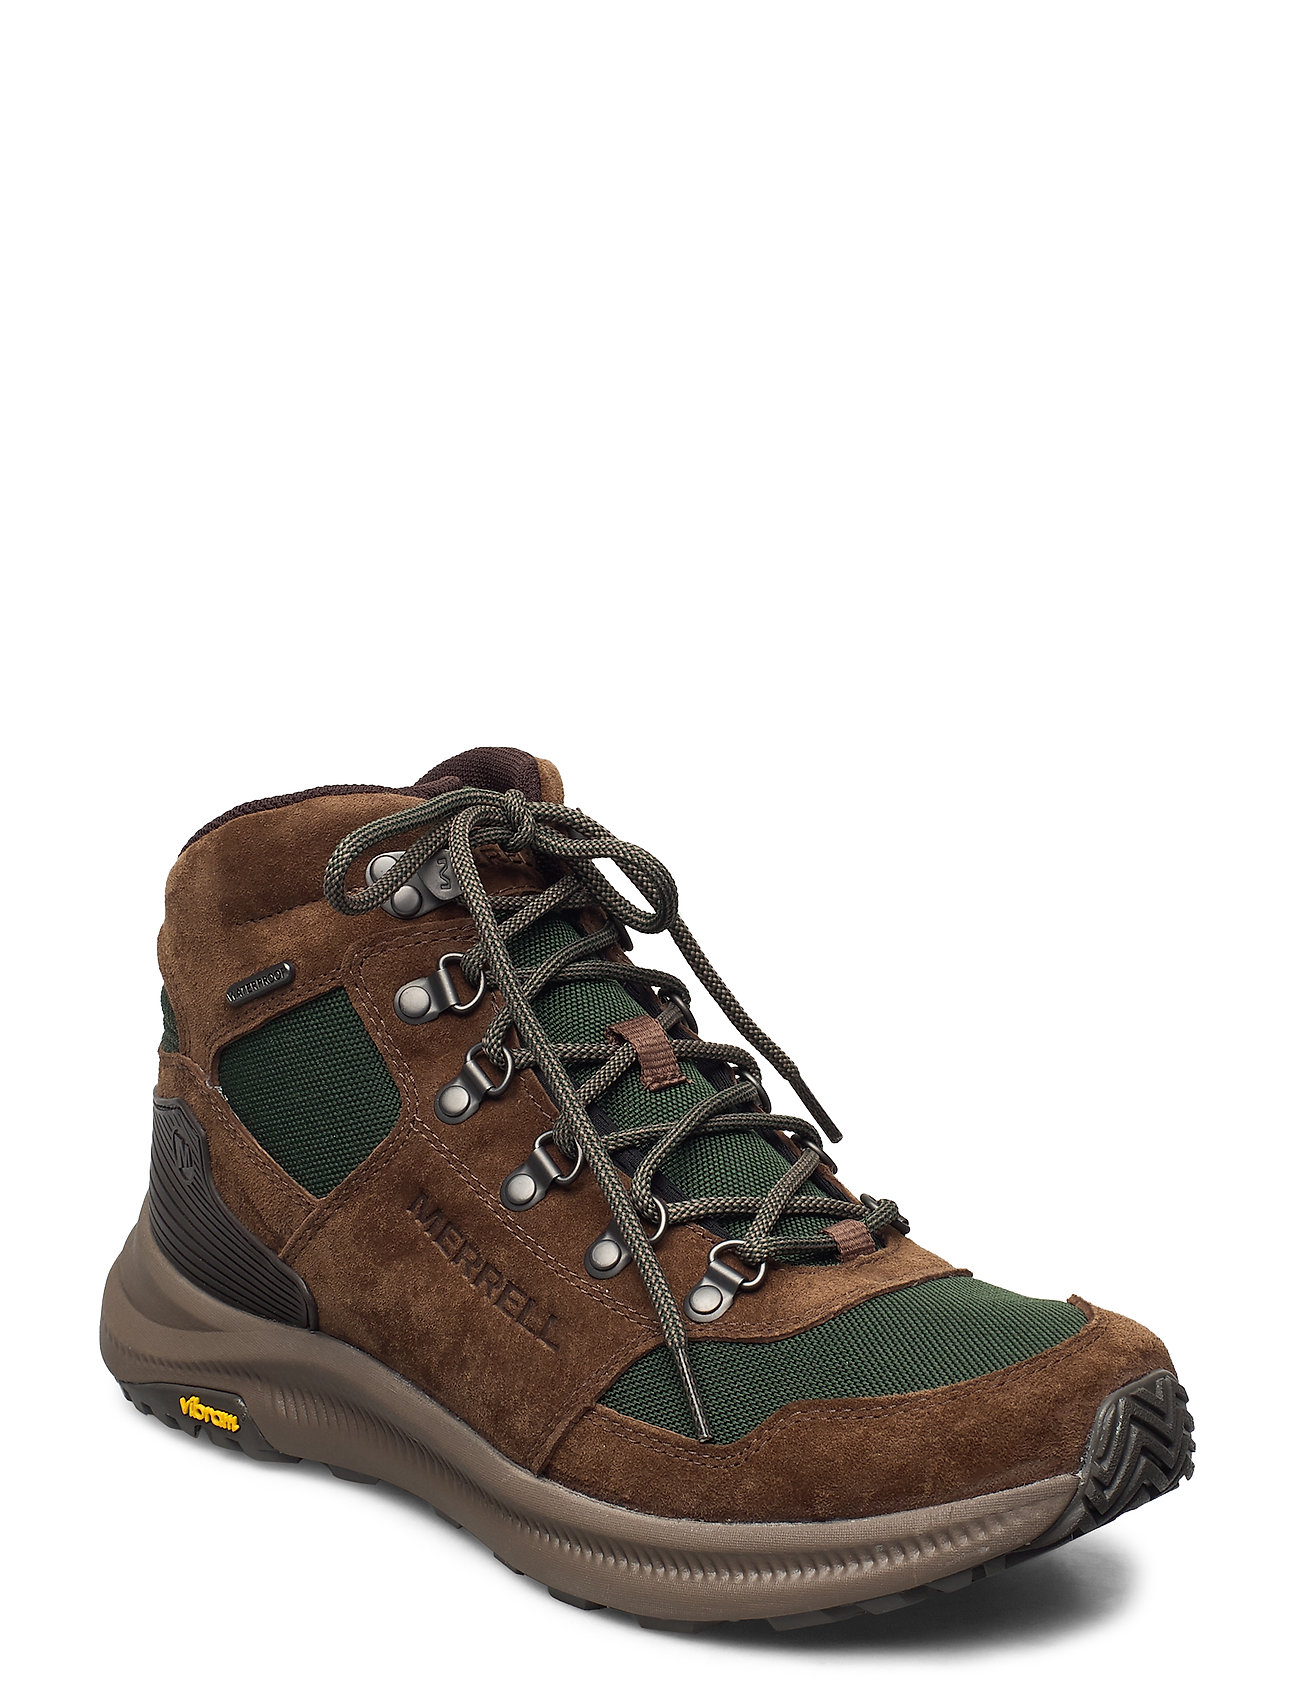 Image of Ontario 85 Mid Wp Forest Shoes Sport Shoes Outdoor/hiking Shoes Brun Merrell (3446399677)